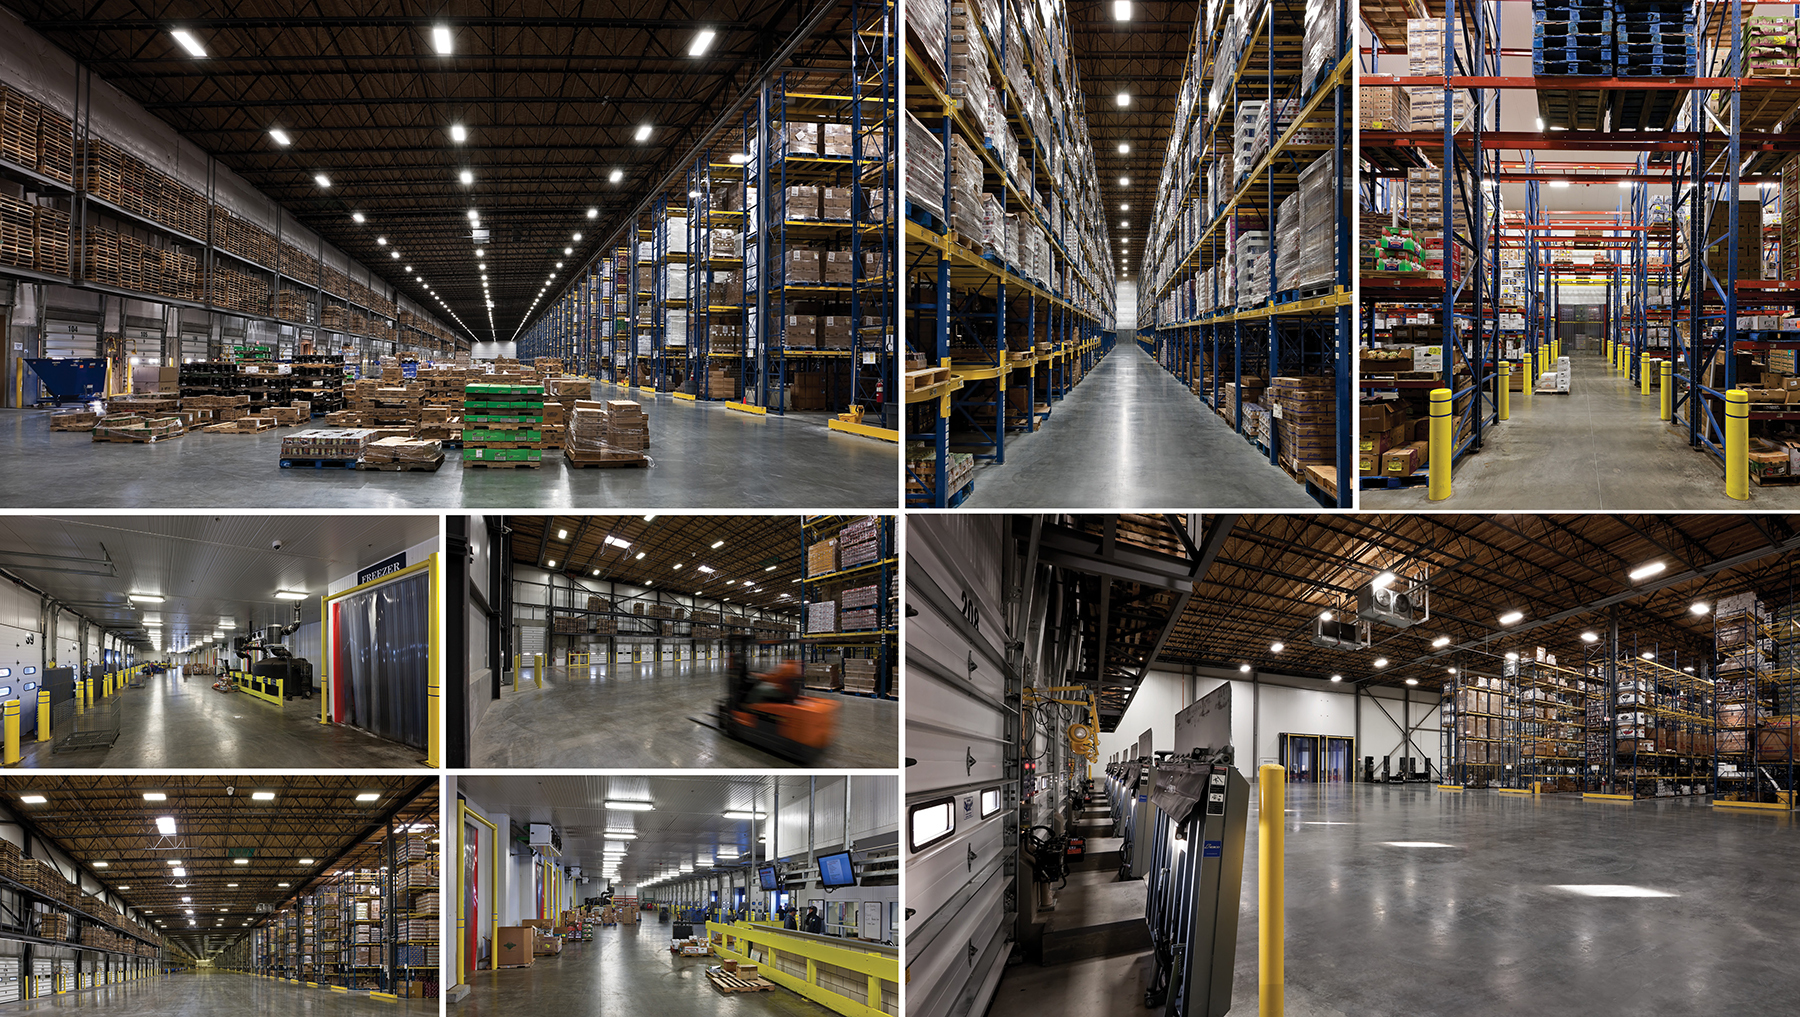 Warehouse-DCCollage.jpg?mtime=2017101611